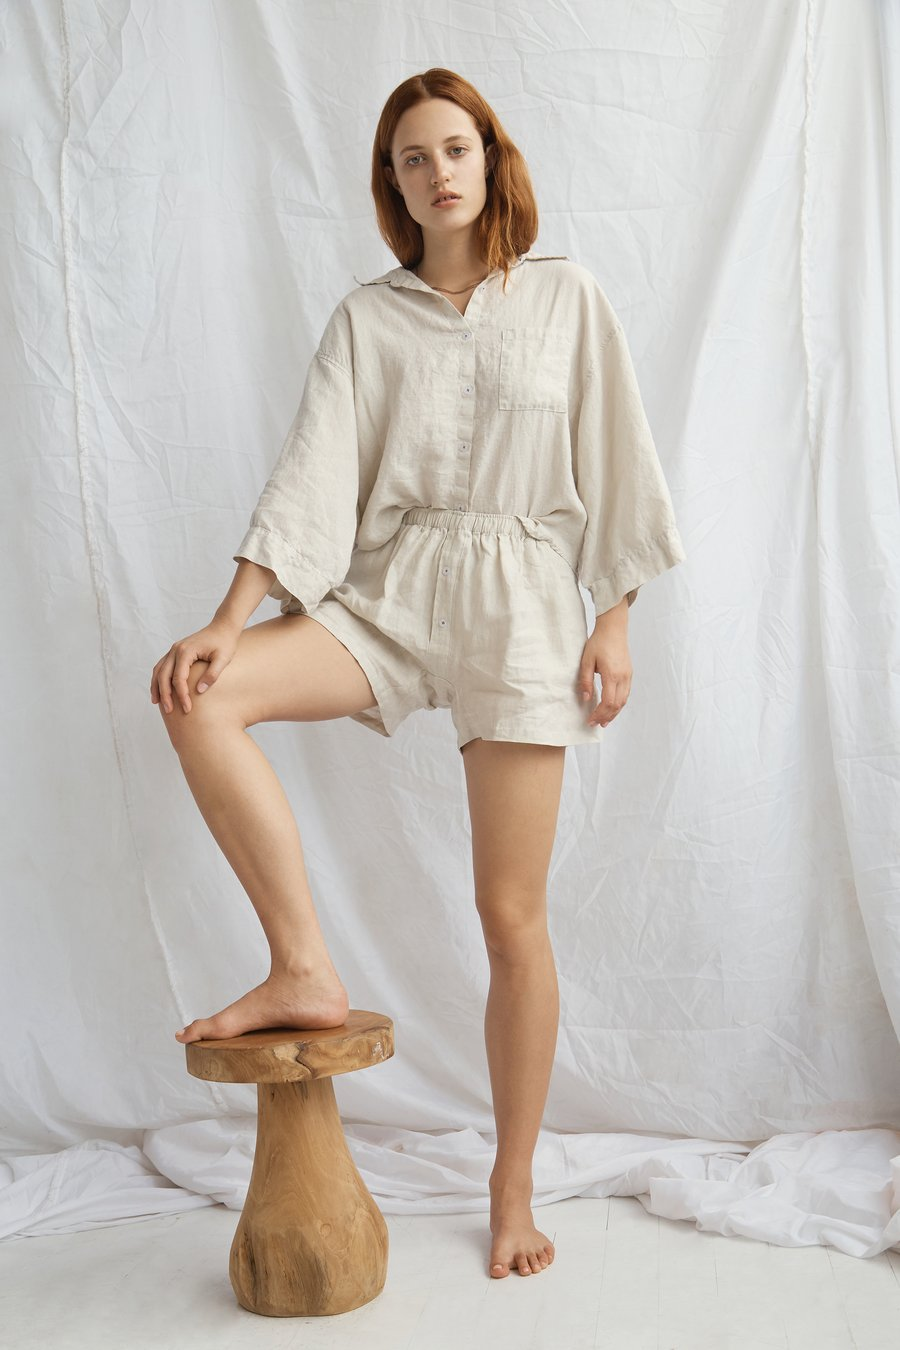 The 03 Sleepwear Set in Oatmeal